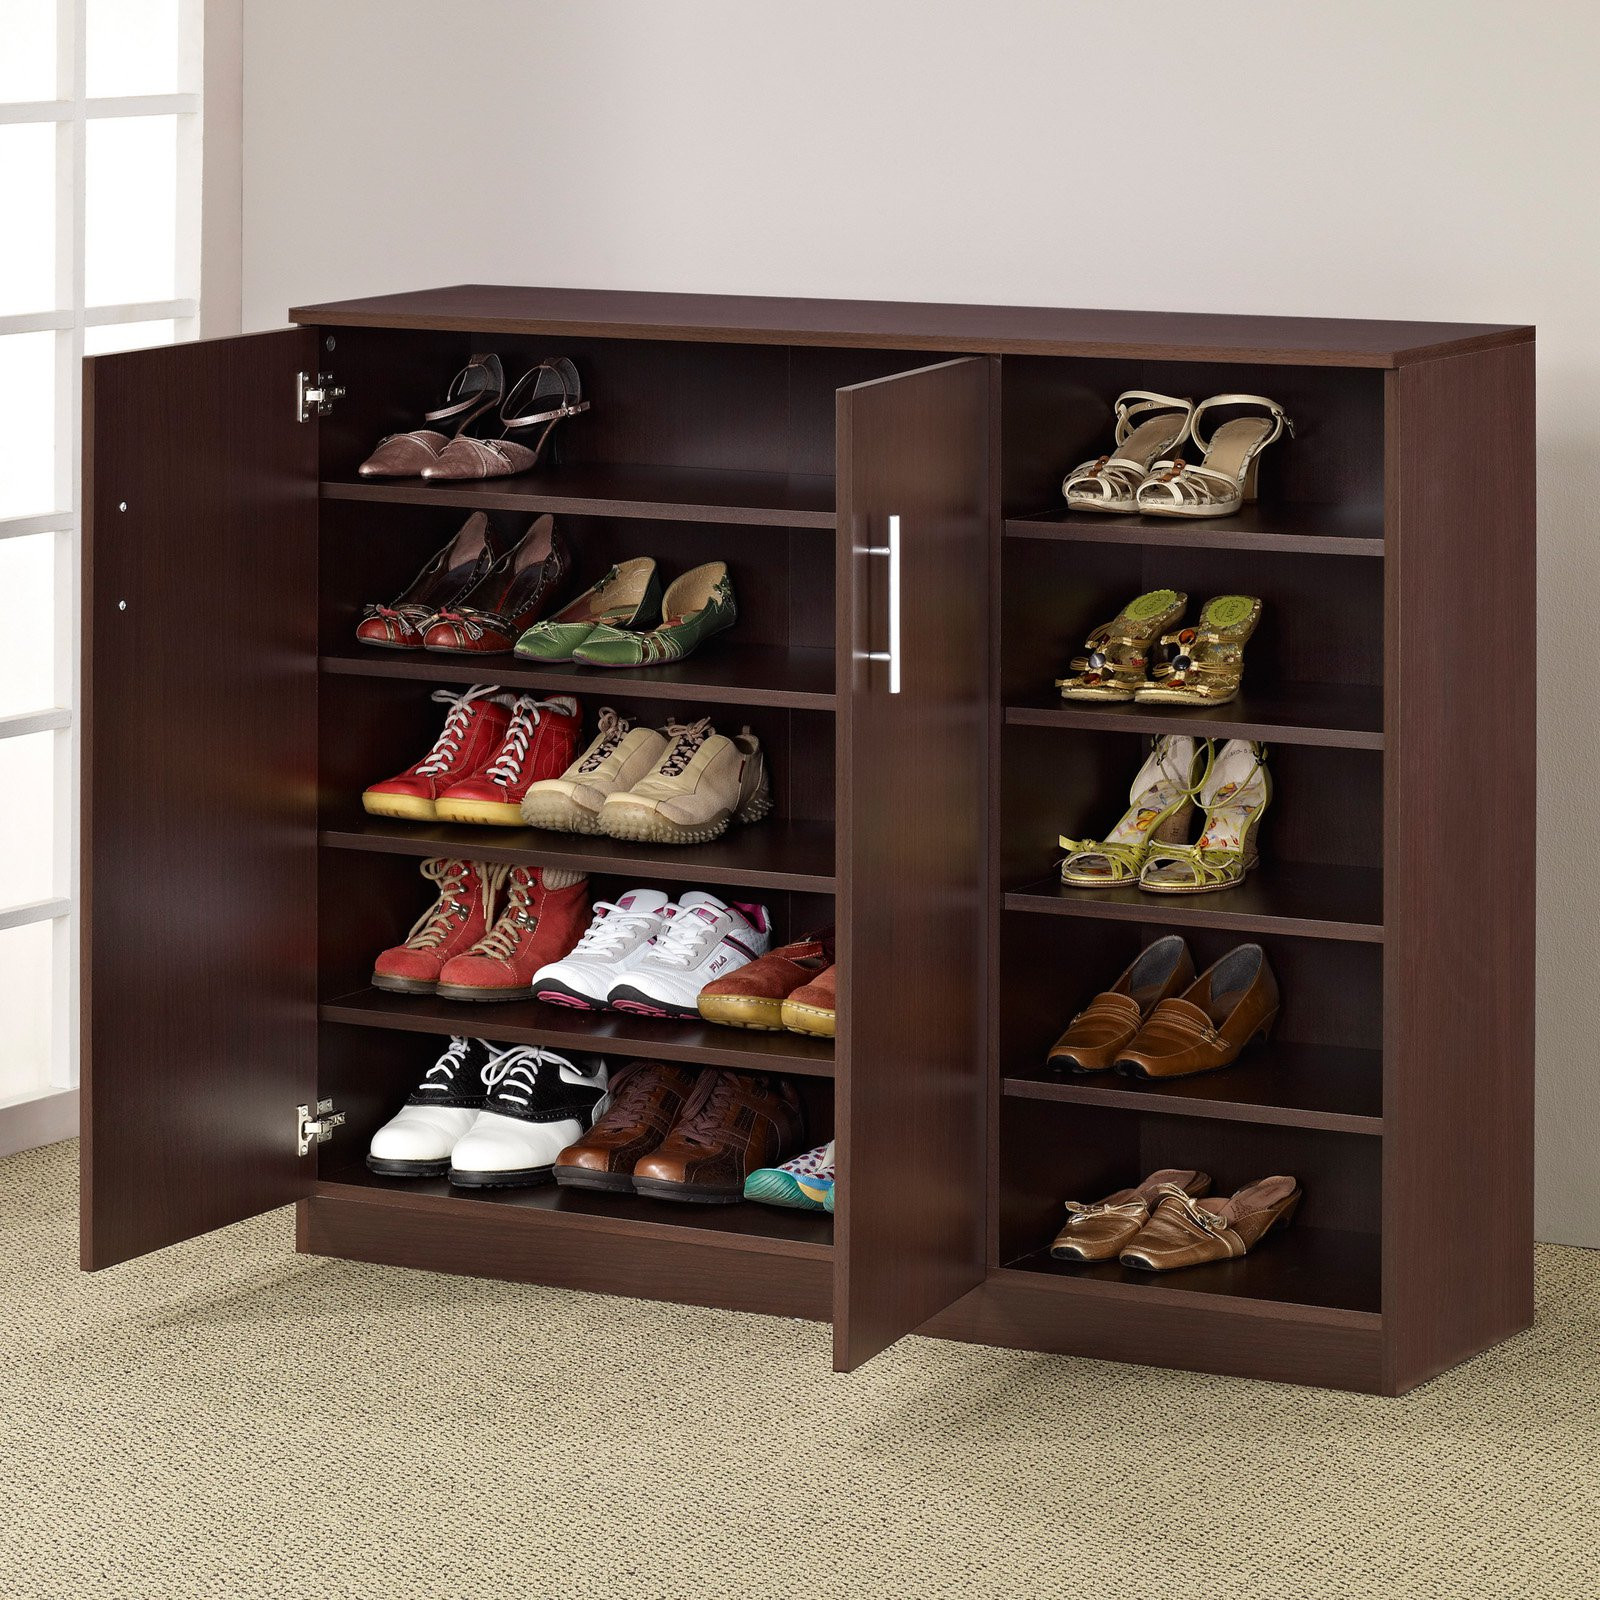 Best ideas about Entryway Shoe Rack . Save or Pin Perfect Shoe Rack For Entryway — STABBEDINBACK Foyer Now.